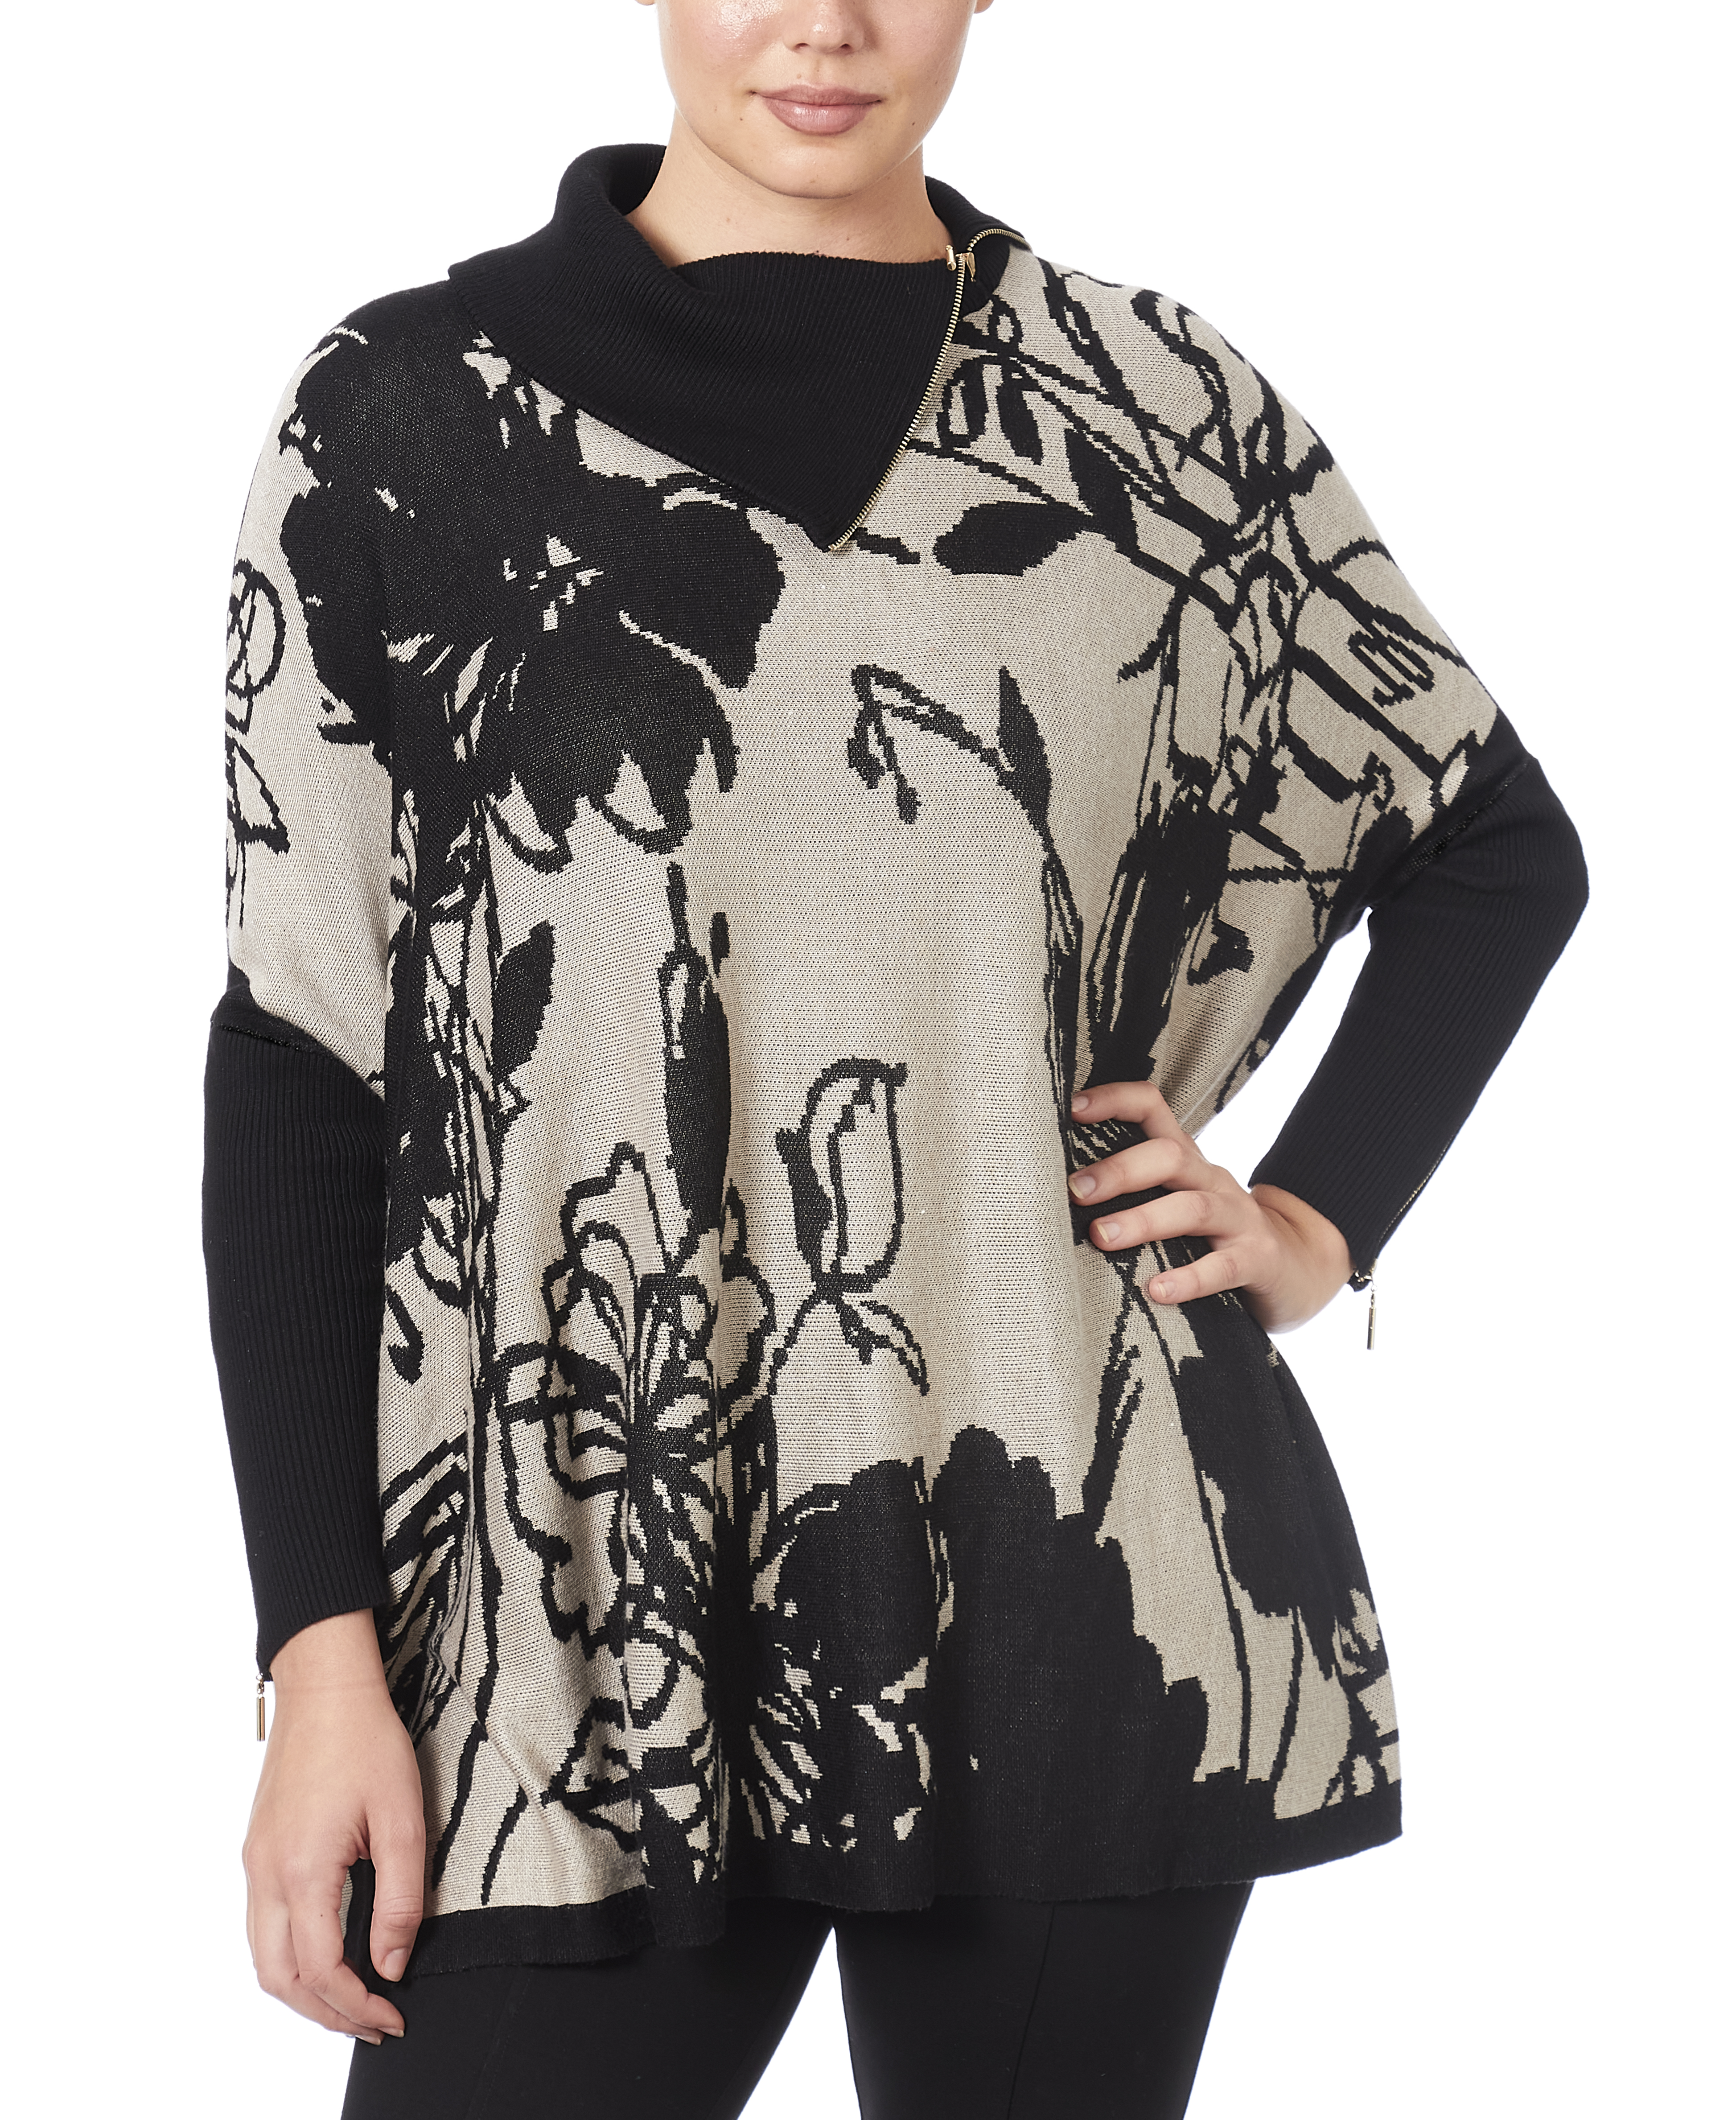 Poncho Zipper Sweater in Sketchy Floral